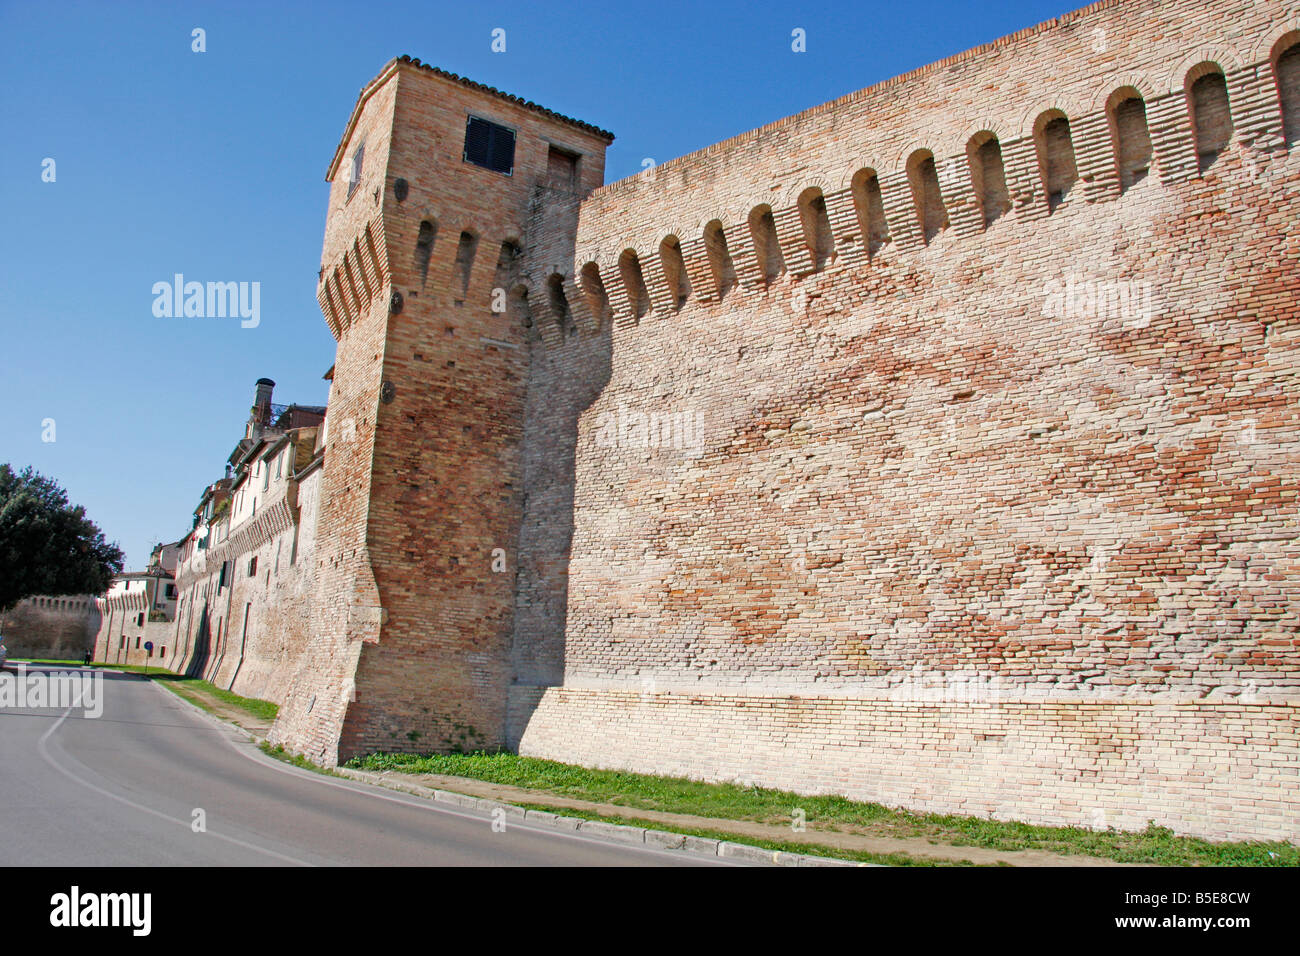 the 14th century historic walls of the beautiful hilltown of Jesi in Le Marche, Italy are built on Roman foundations Stock Photo